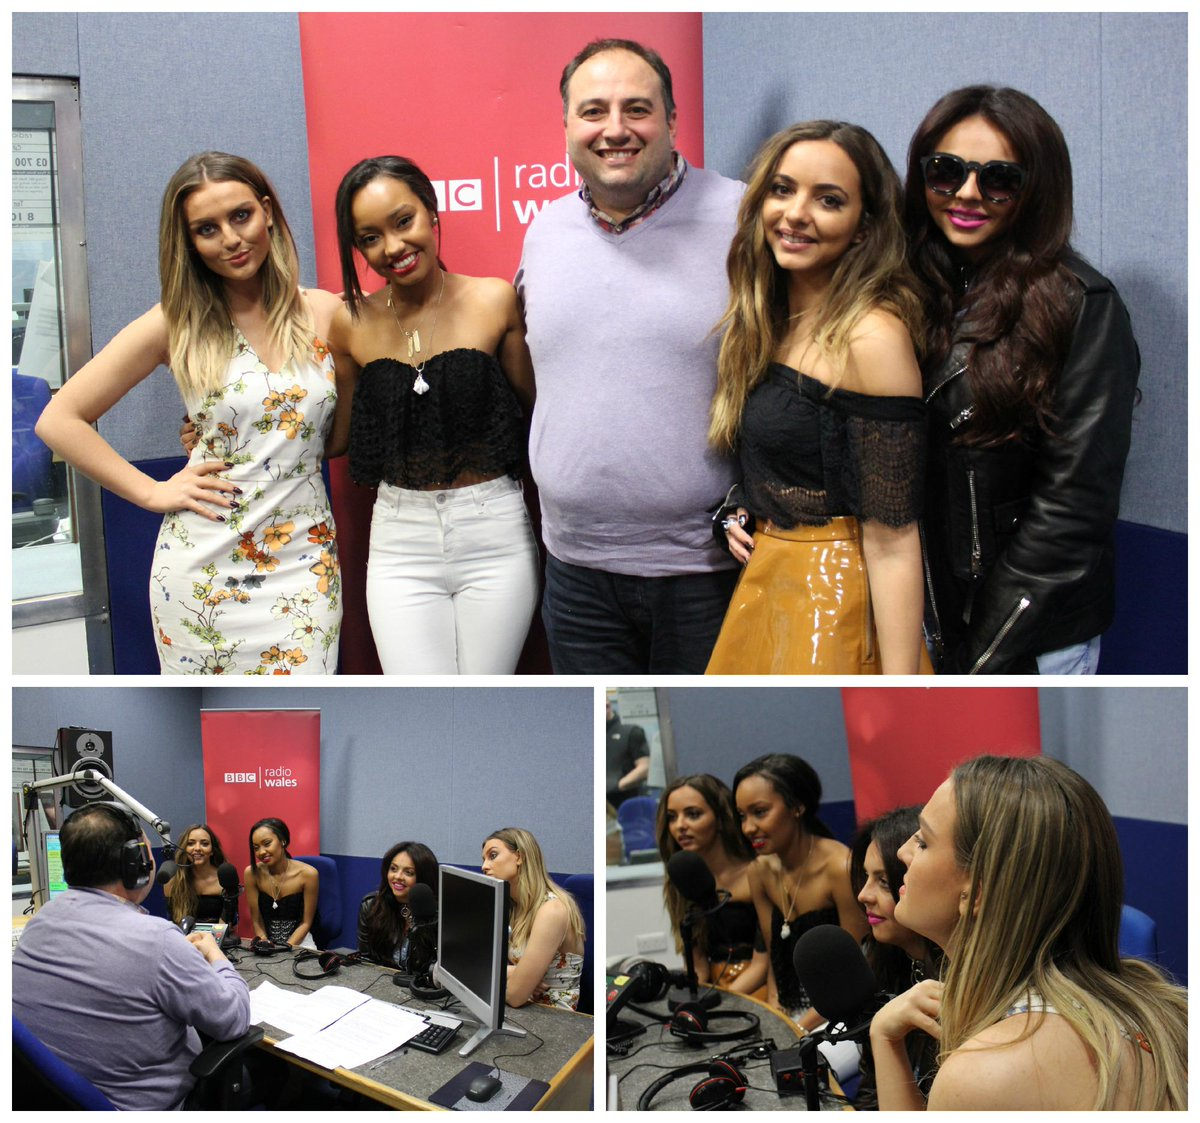 LISTEN LIVE: @LittleMix talk Black Magic with @wynneevans @LittleMixerHQ @LittleMixTeam_ http://t.co/ebK78AEoCc http://t.co/wBUIF6xwWS